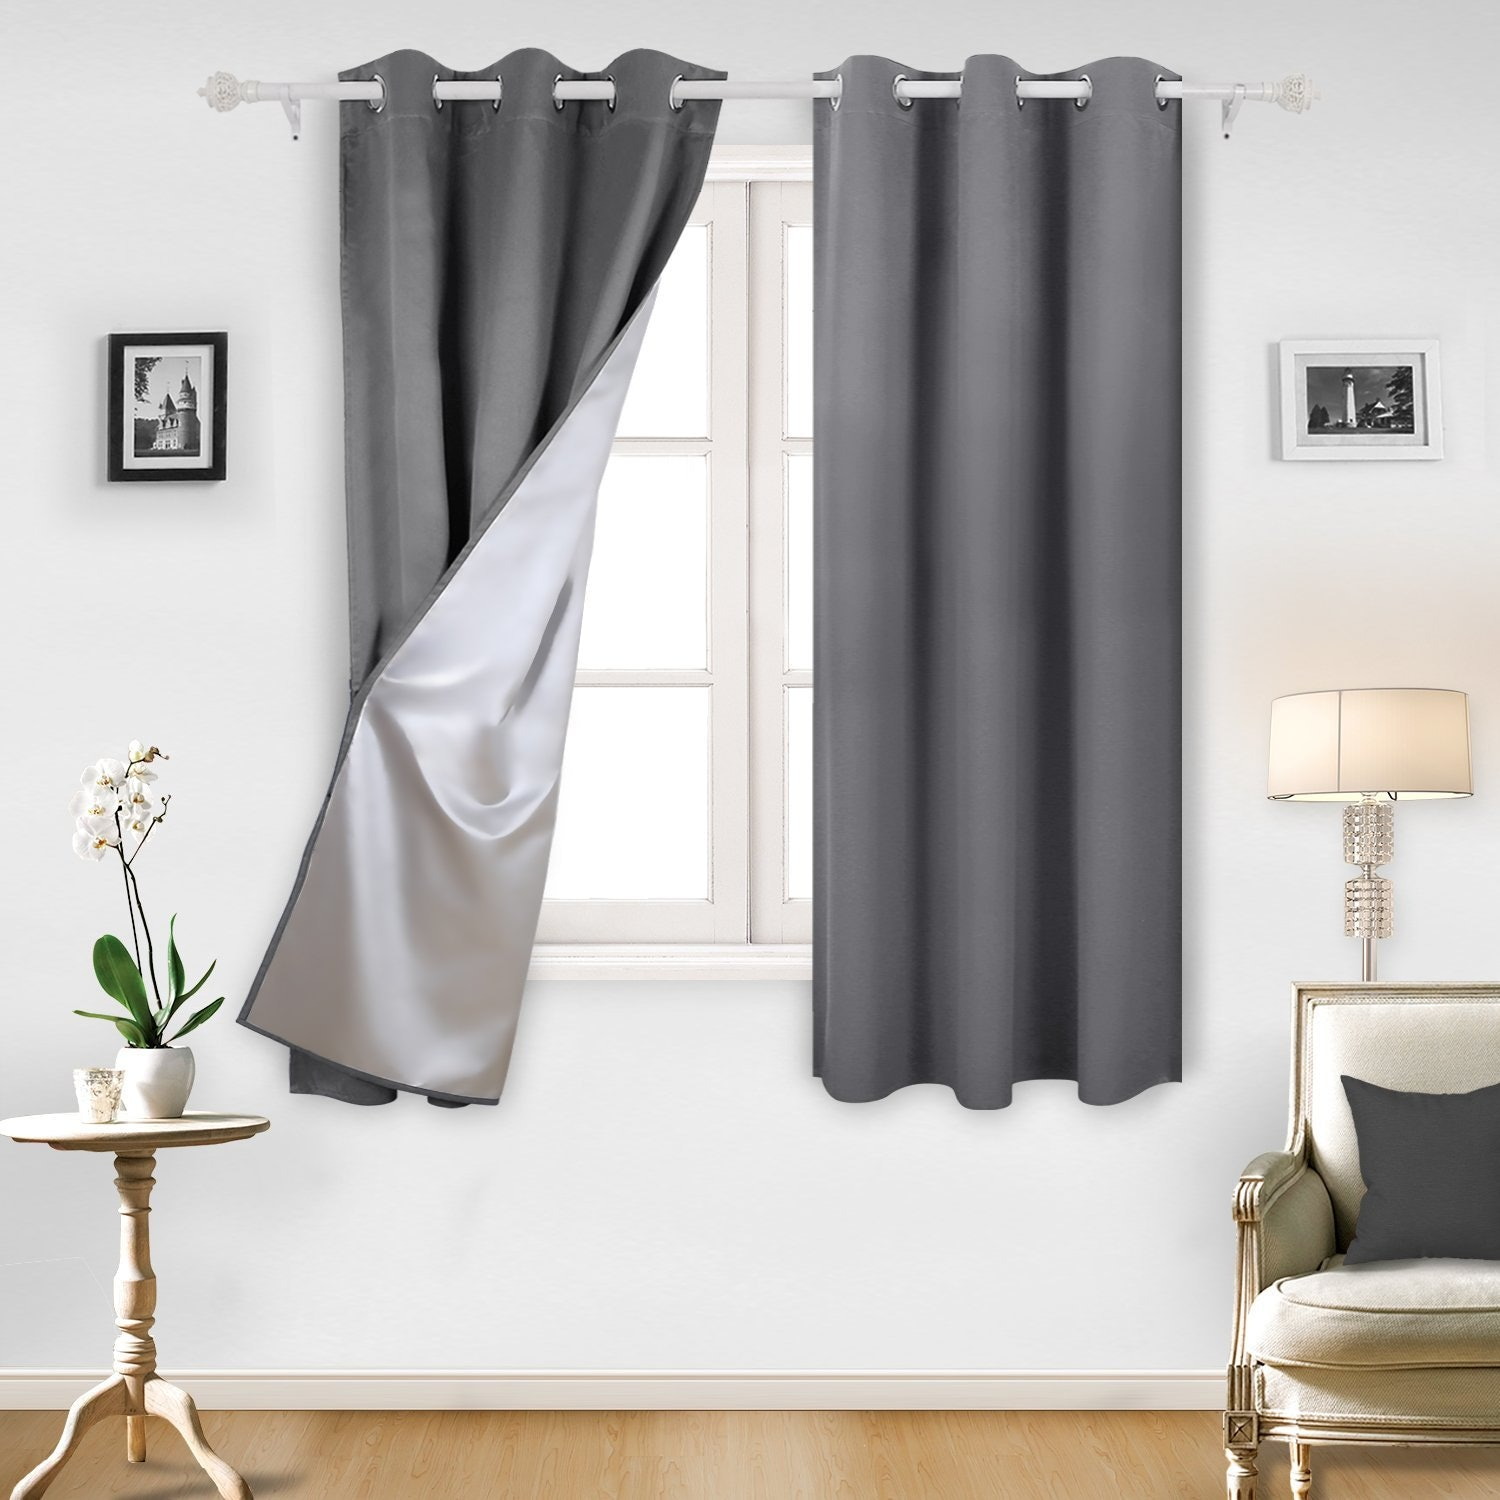 Blackout Curtains With Designs Pusmun